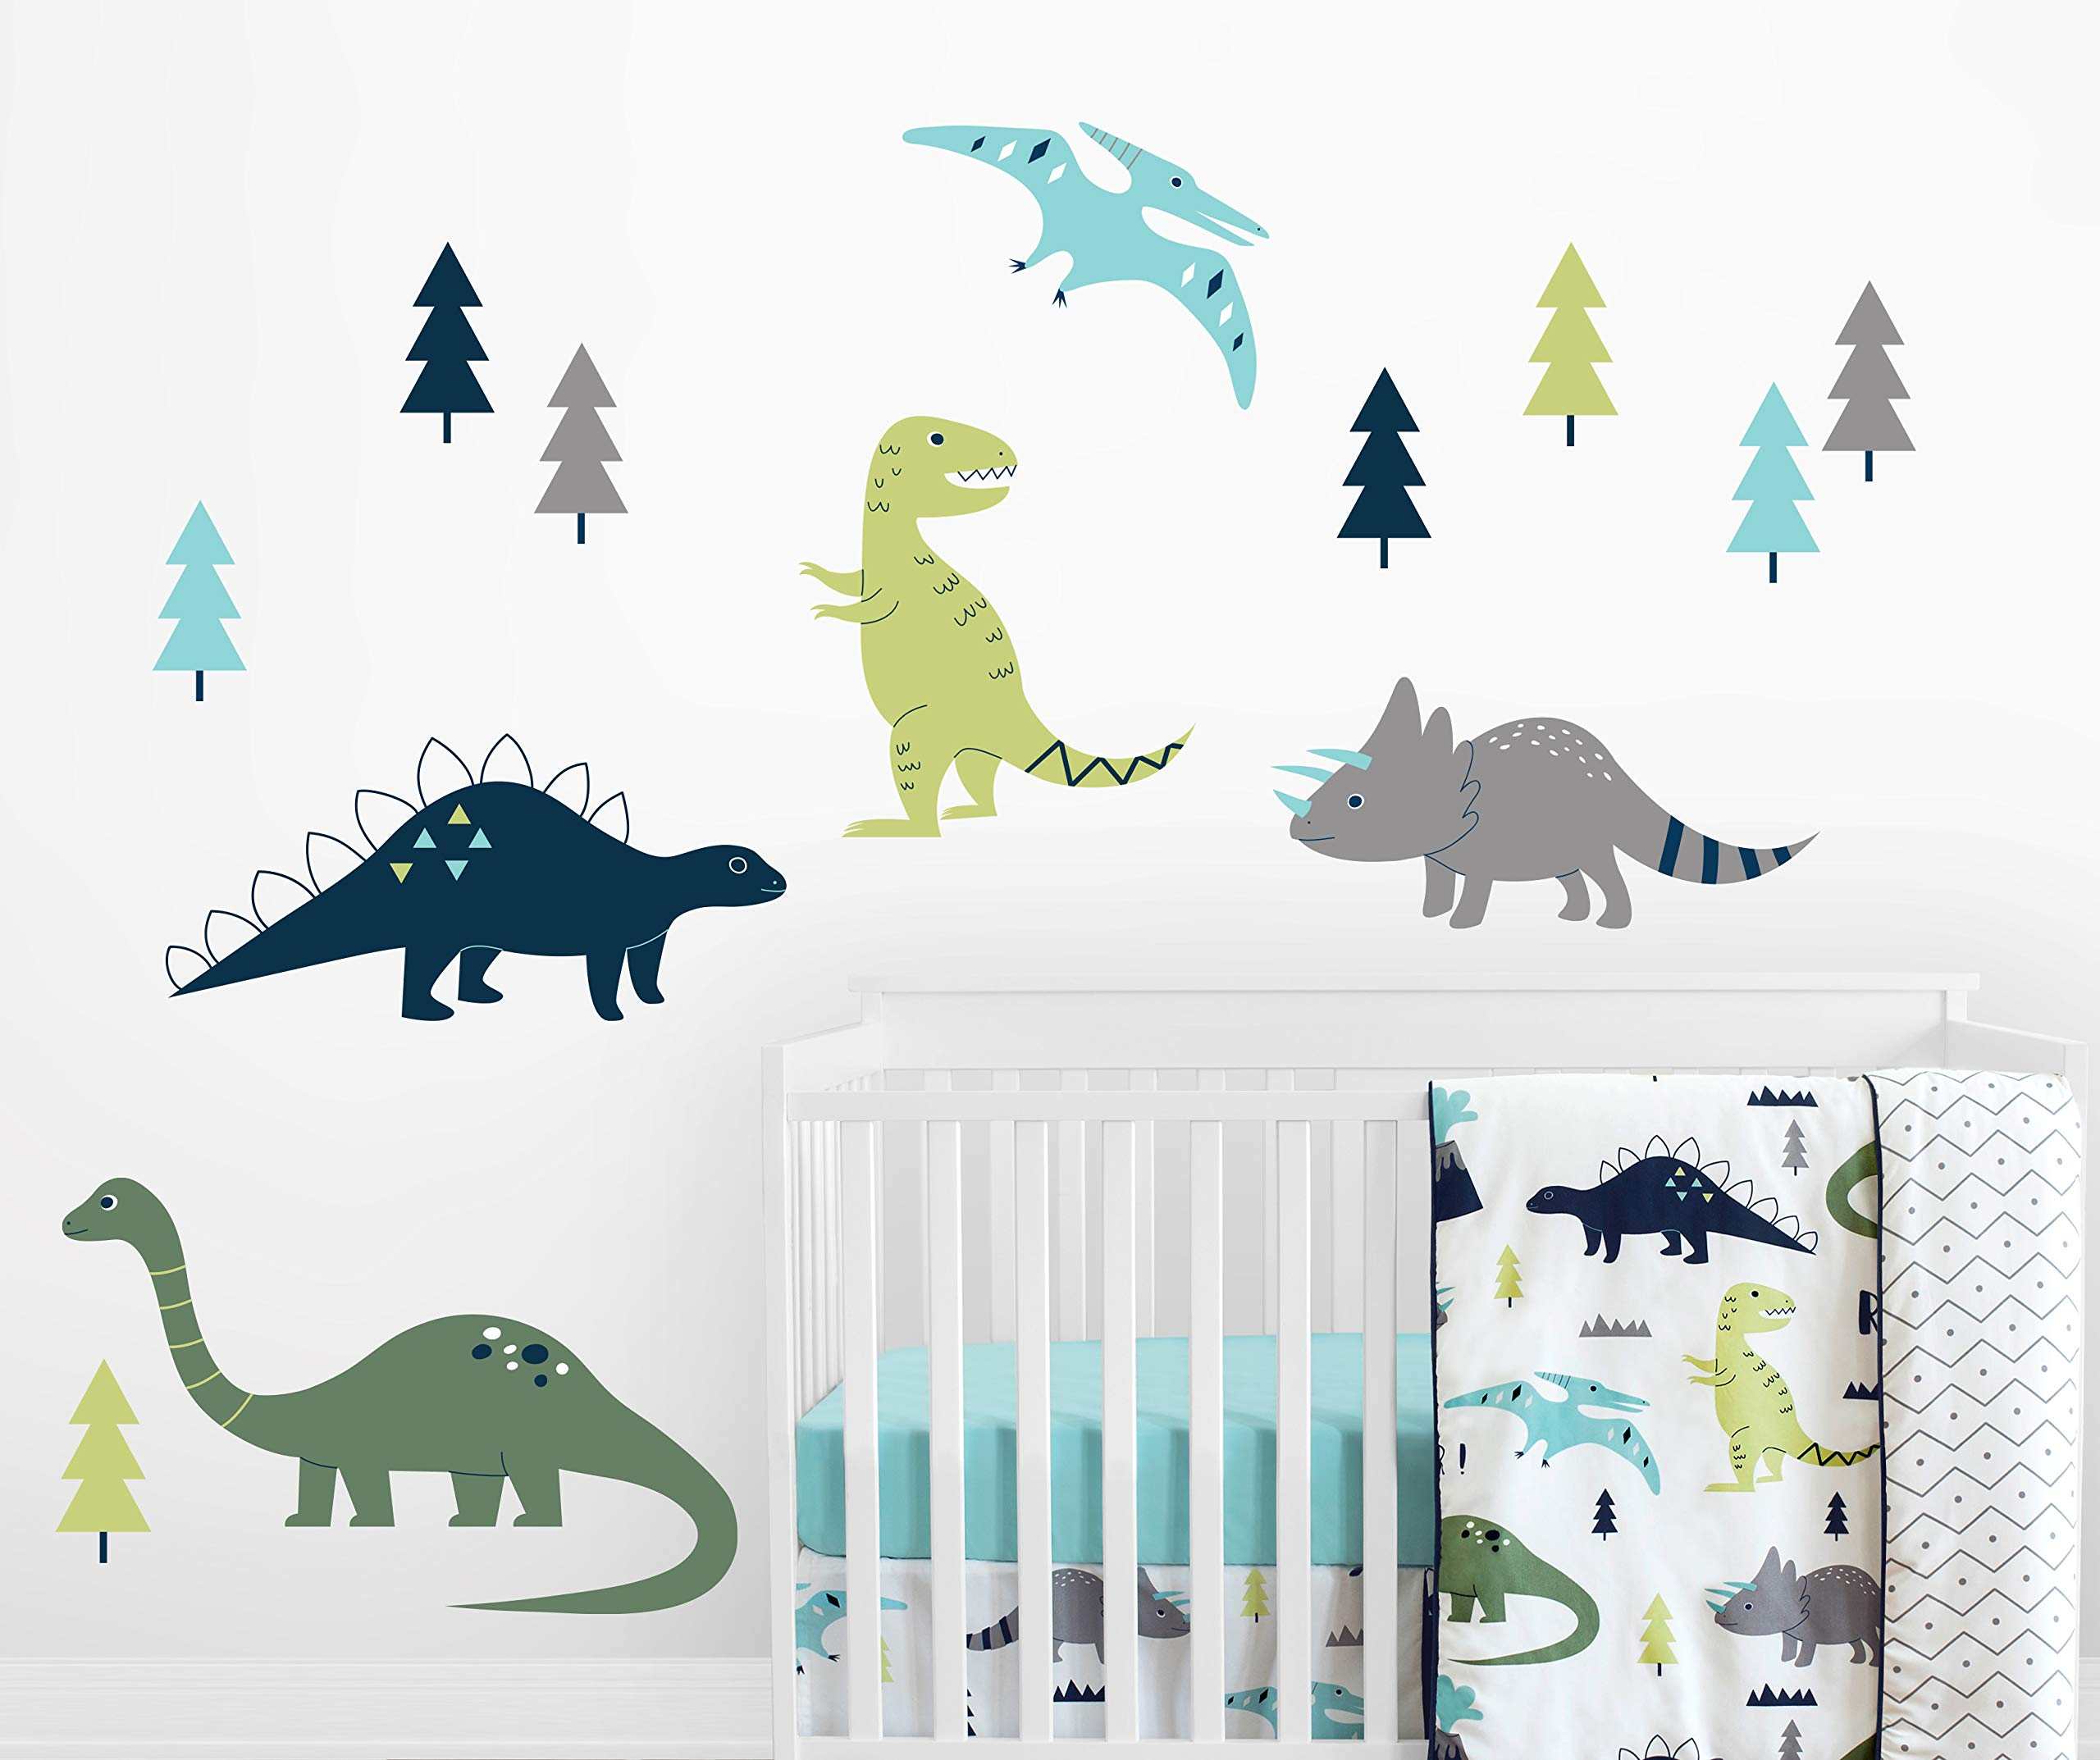 Sweet Jojo Designs Navy Blue, Green and Grey Dino Large Peel and Stick Wall Mural Decal Stickers Art Nursery Decor for Mod Dinosaur Collection - Set of 2 Sheets by Sweet Jojo Designs